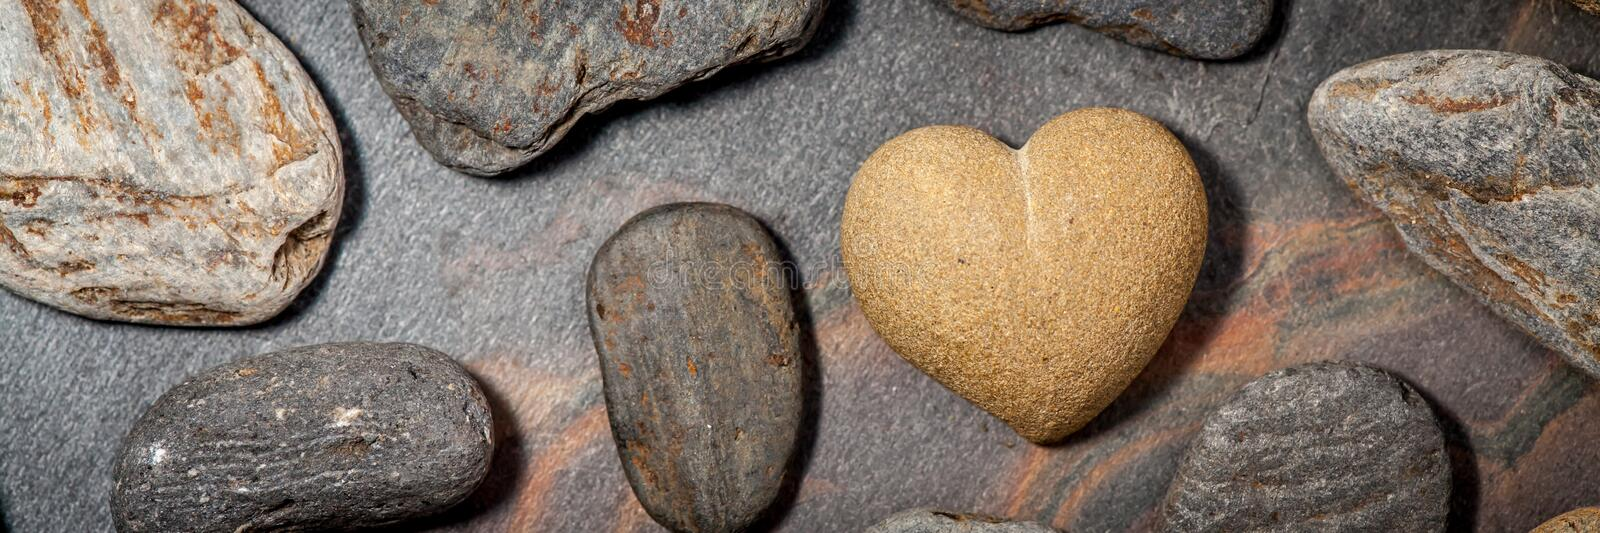 Brown Sandstone Heart royalty free stock photo